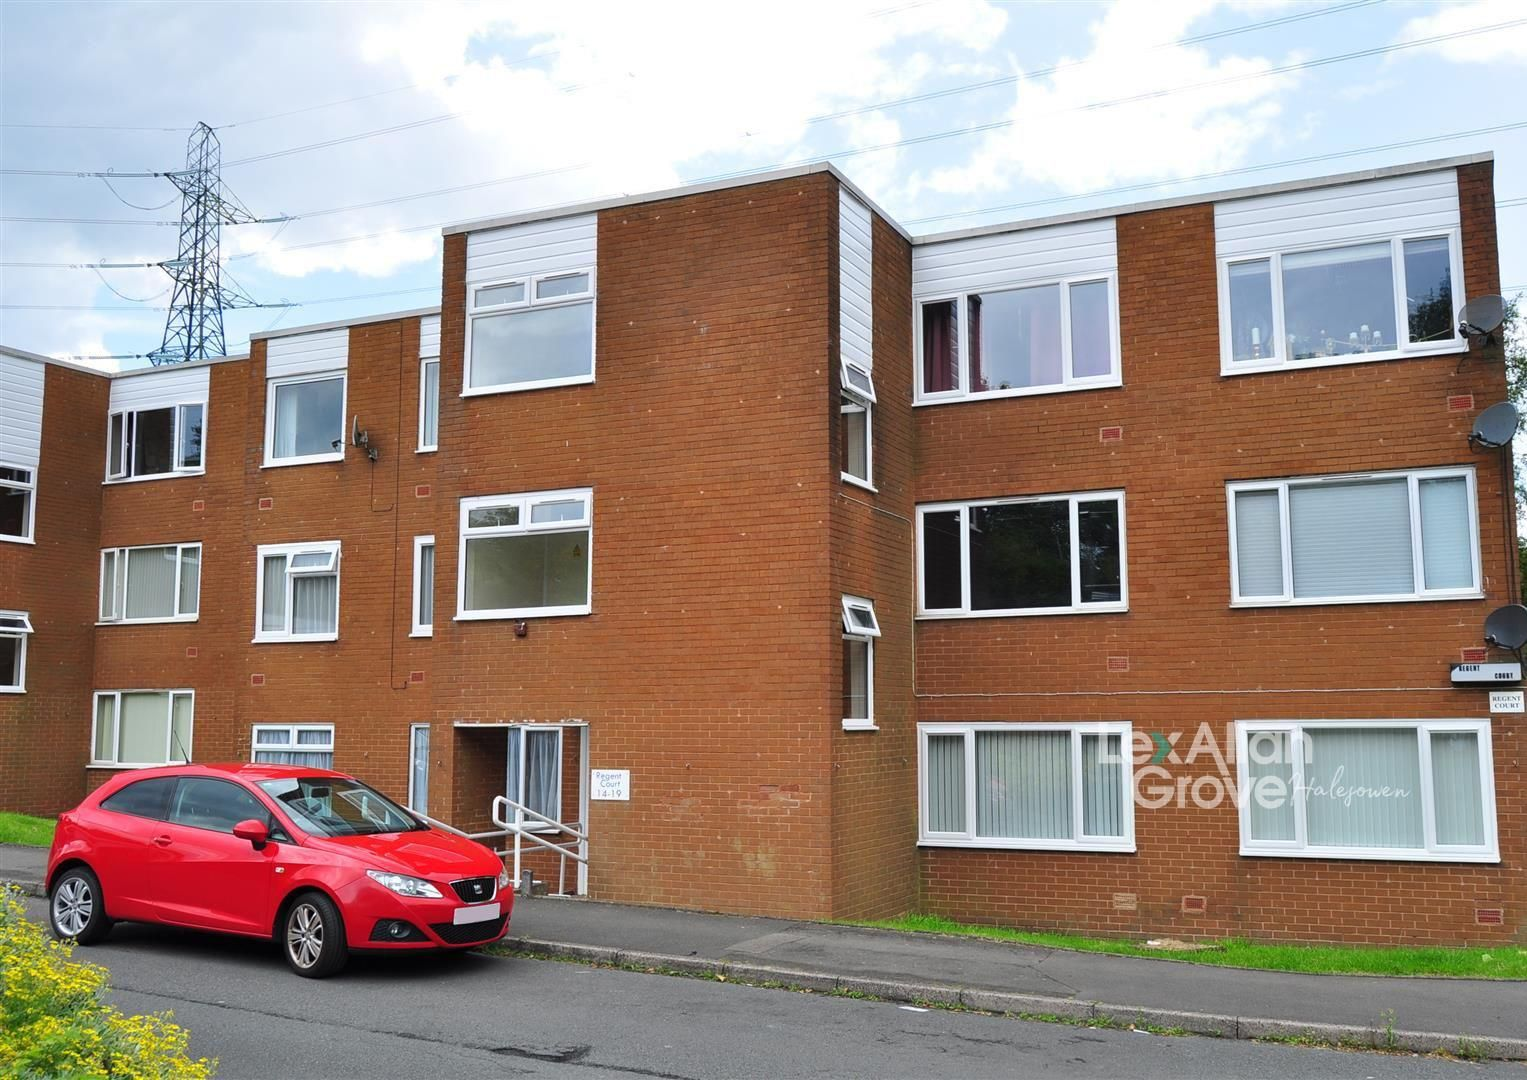 2 bed flat for sale, B62